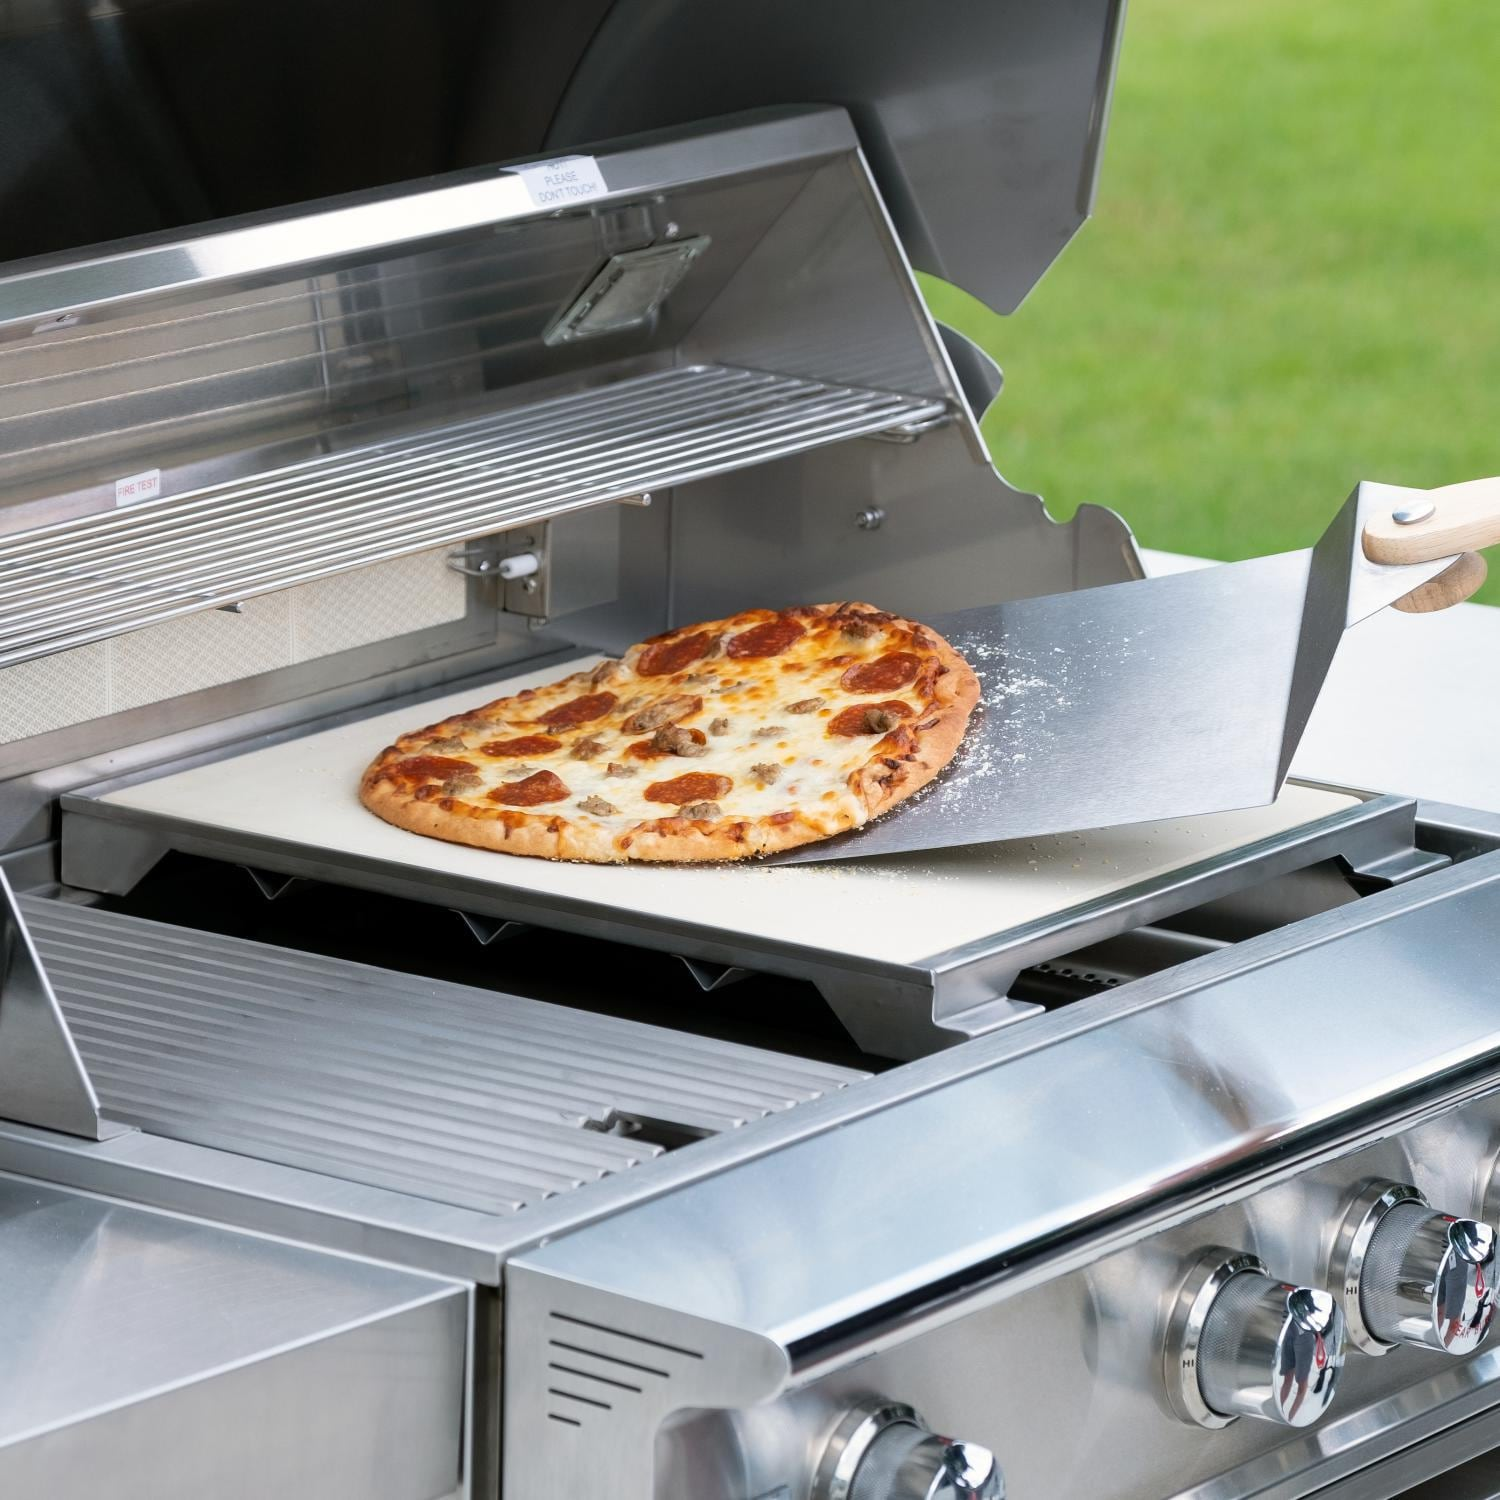 Blaze Professional LUX 15-Inch Ceramic Pizza Stone With Stainless Steel Tray - BLZ-PRO-PZST-2